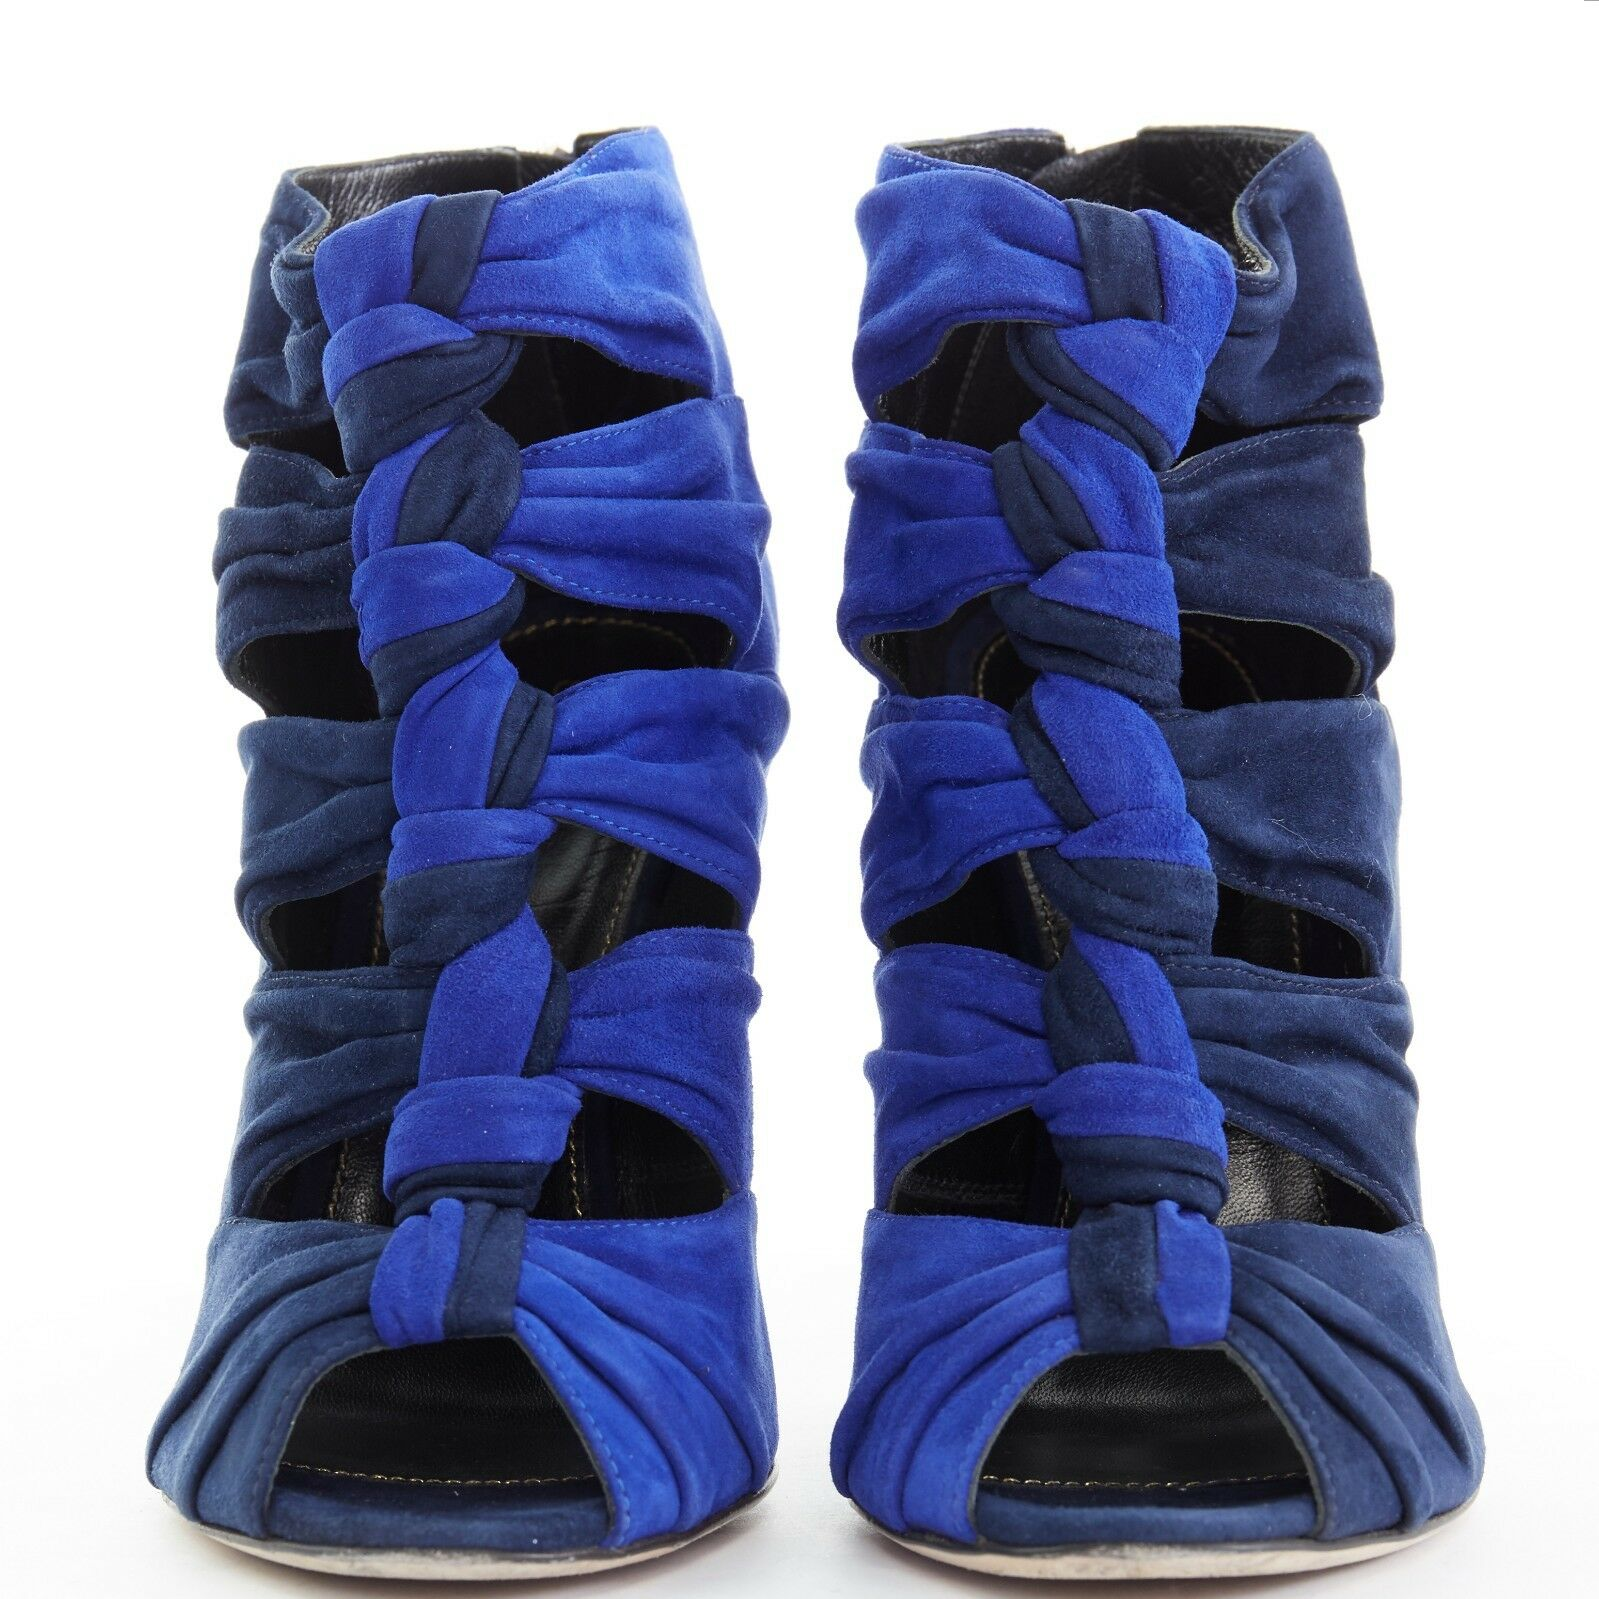 SERGIO ROSSI A76490 cobalt navy bluee suede knotted front peeptoe sandals EU39